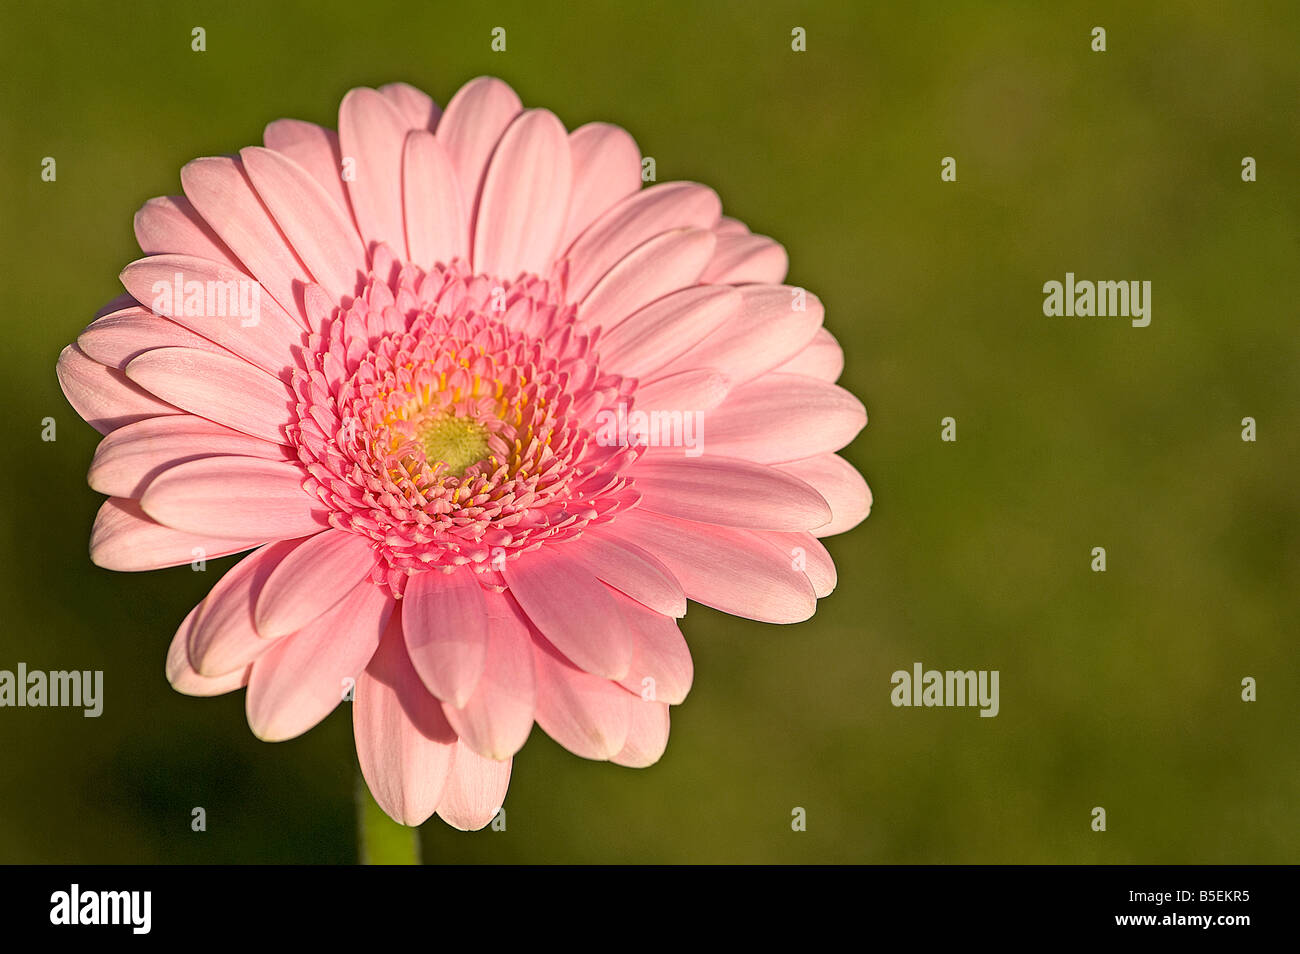 Pink gerbera showing radial symmetry disc and ray florets typical of daisy family - Stock Image